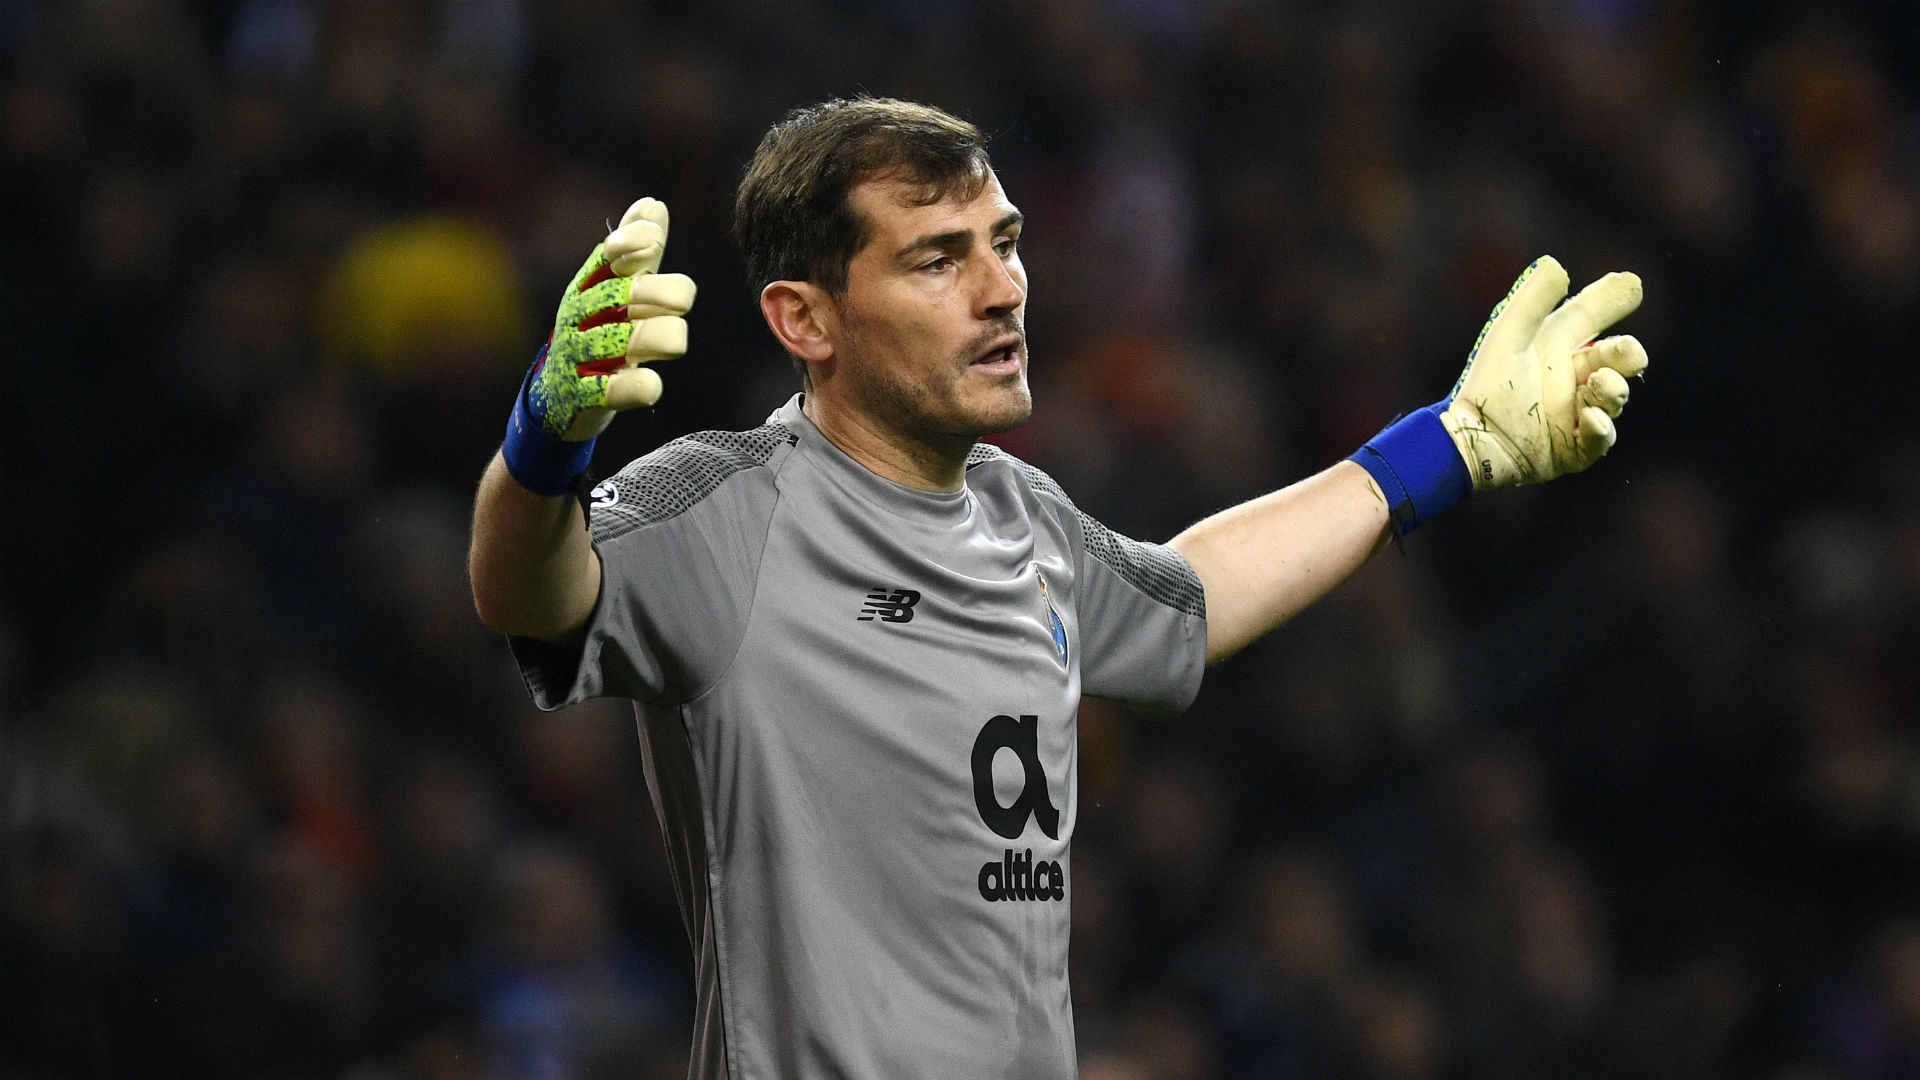 Azpilicueta hopes to see Casillas back on the pitch soon